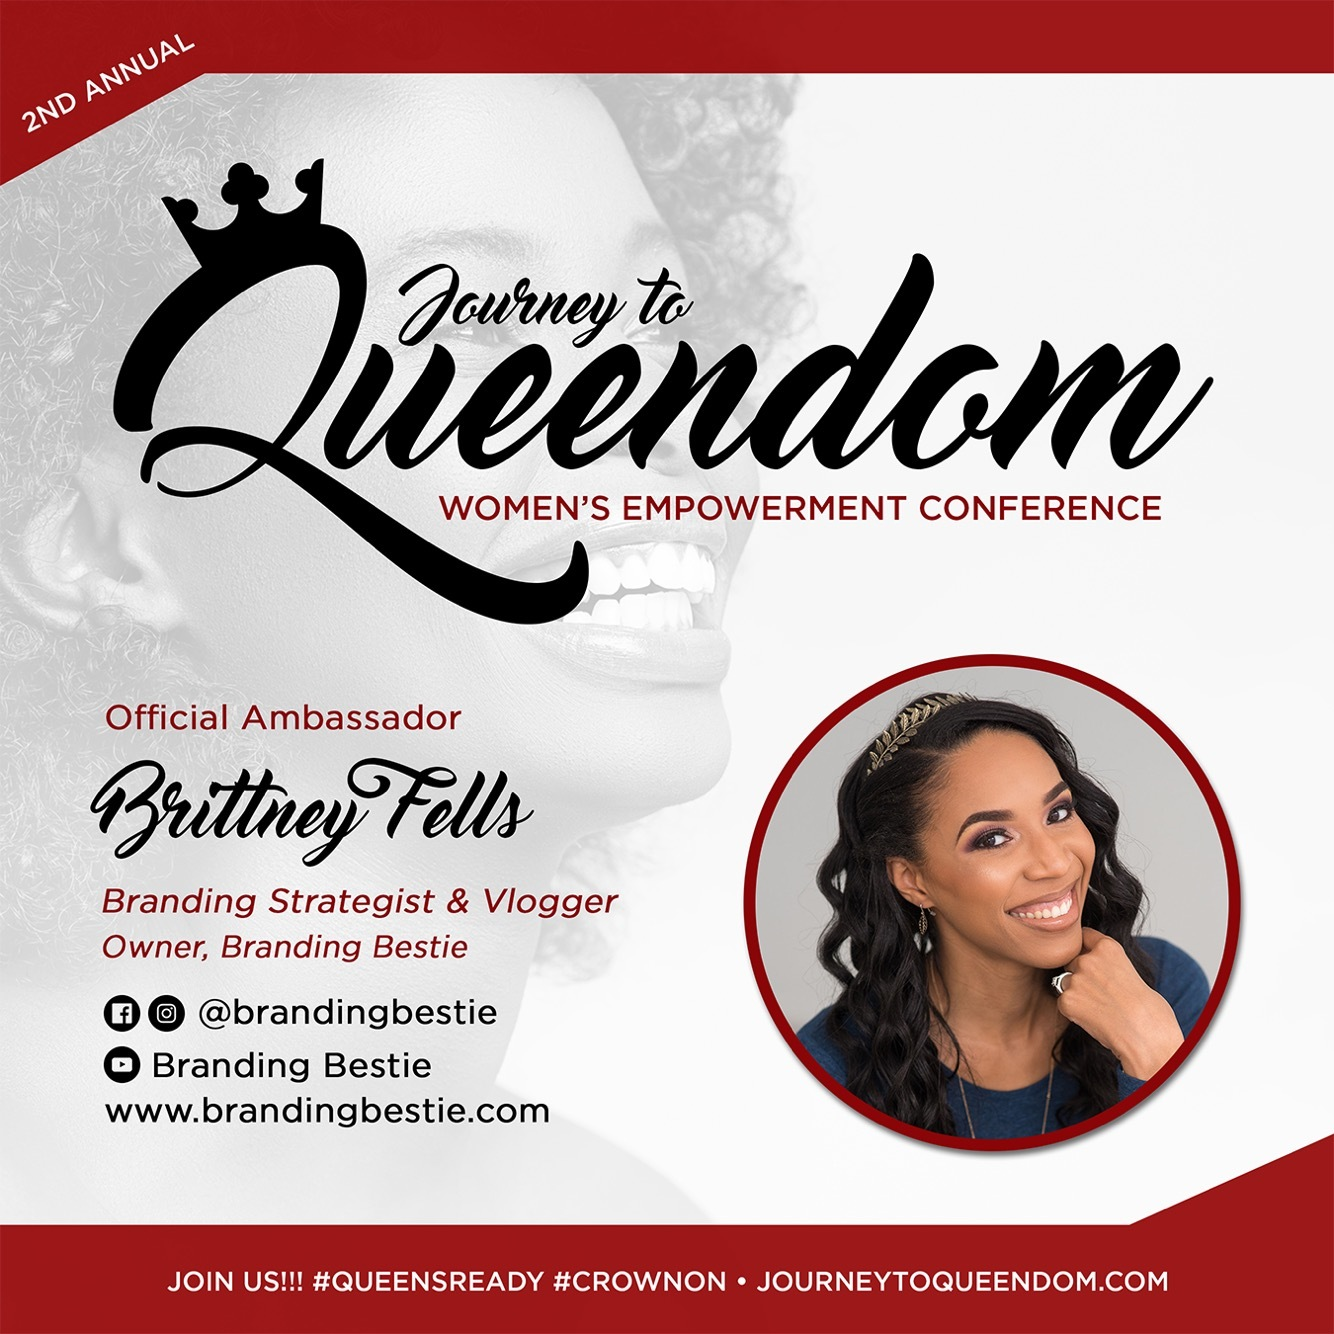 Journey To Queendom's Creative Director & Ambassador